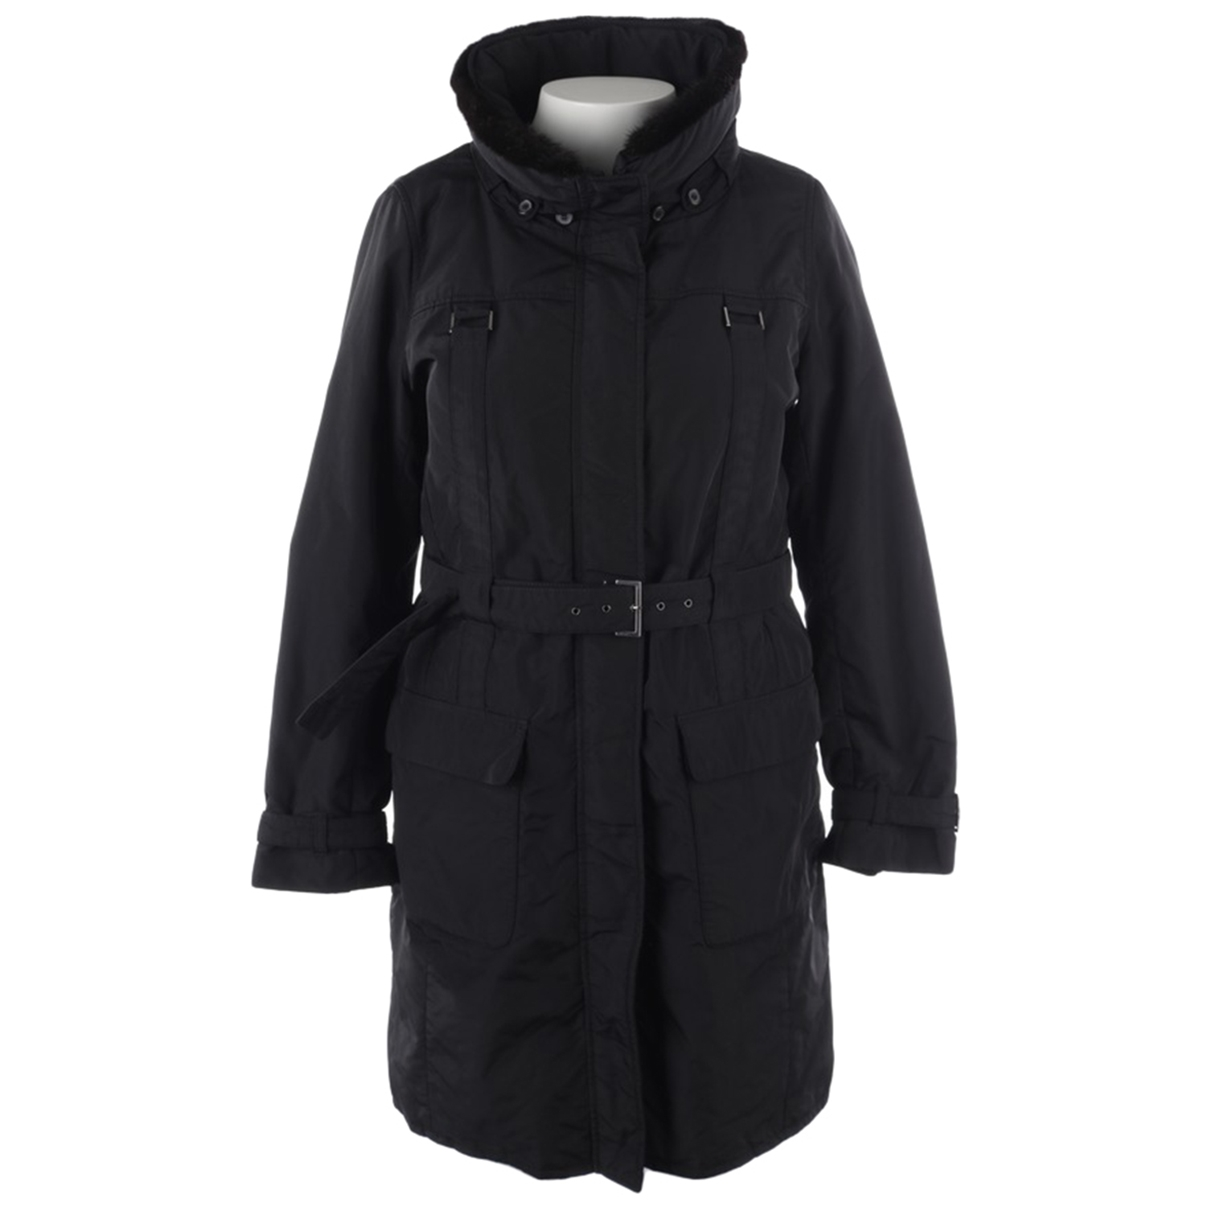 Max Mara 's \N Black coat for Women 44 FR